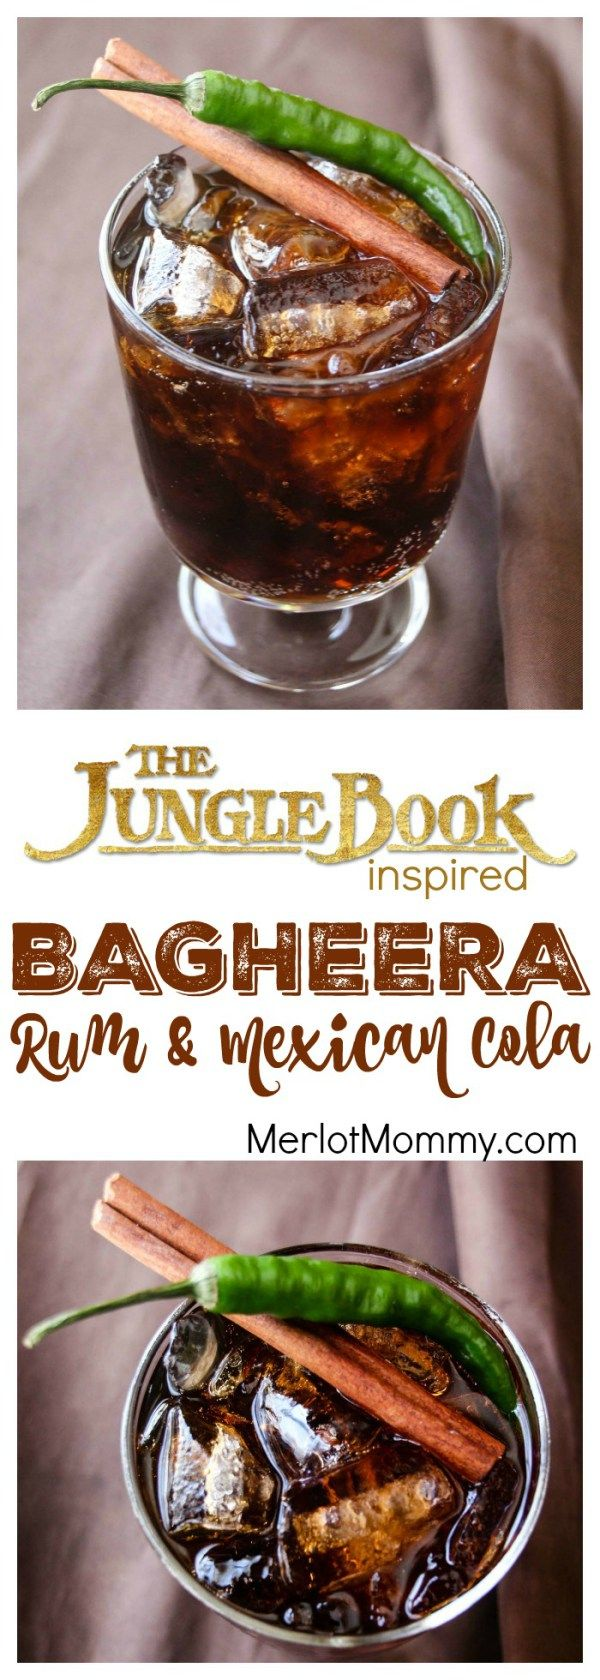 Bagheera Rum & Mexican Cola: Disney Jungle Book-Inspired Cocktail